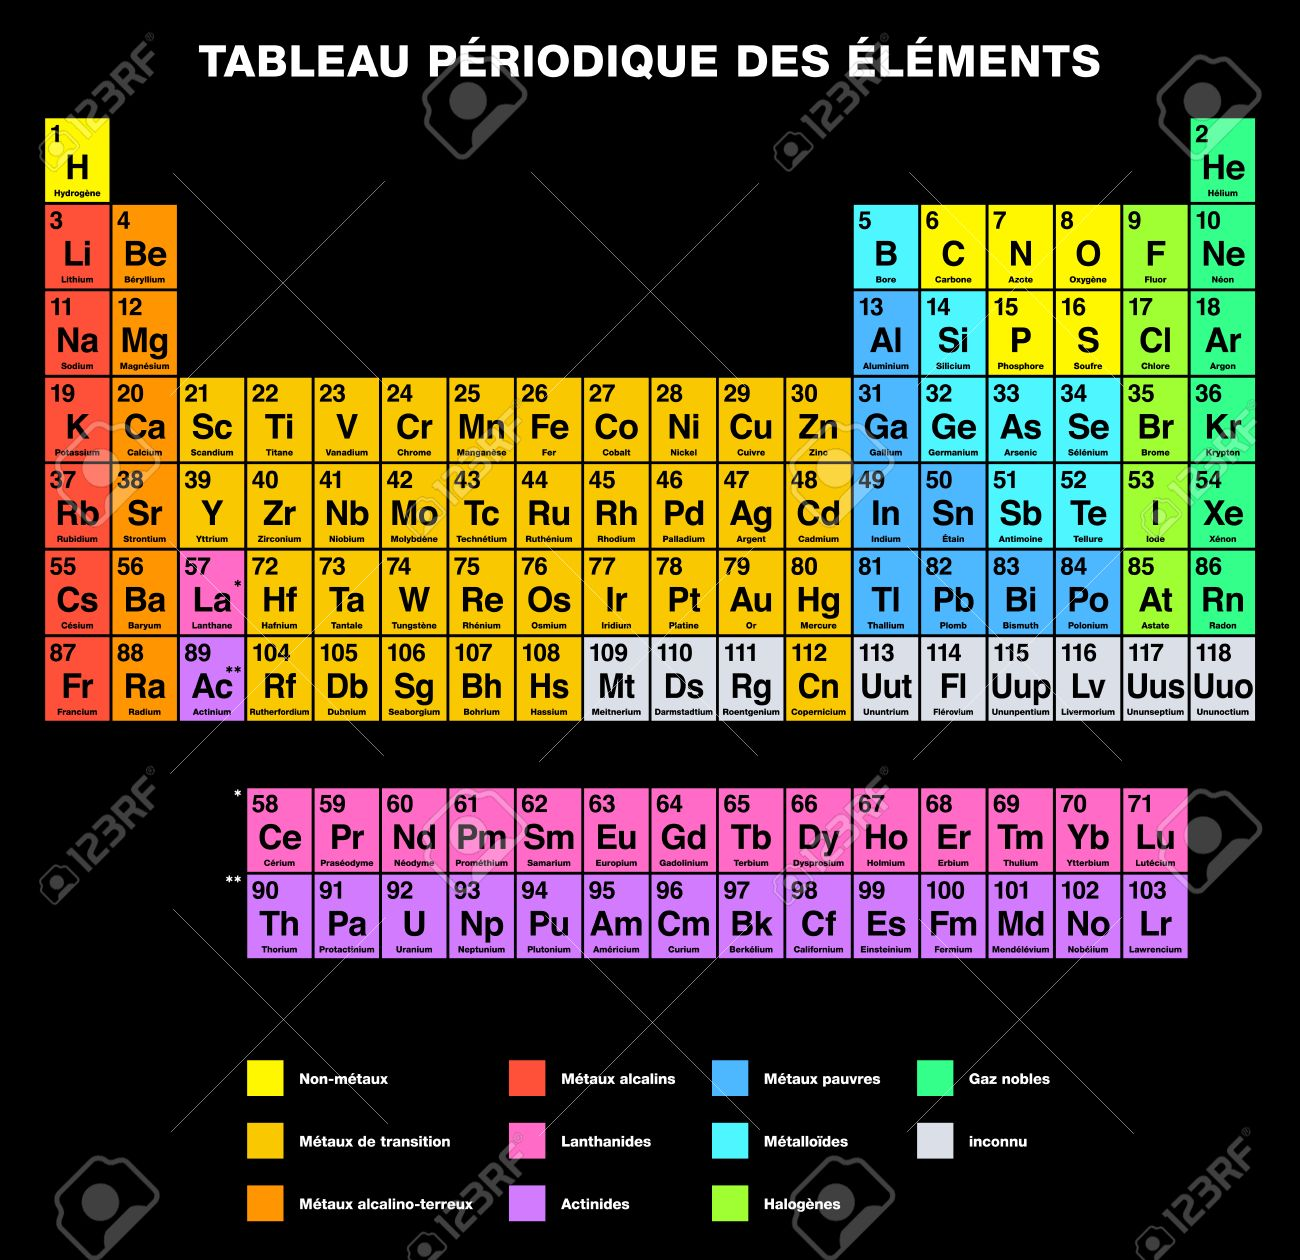 Element 76 periodic table images periodic table images element 76 periodic table image collections periodic table images element 76 periodic table images periodic table gamestrikefo Choice Image